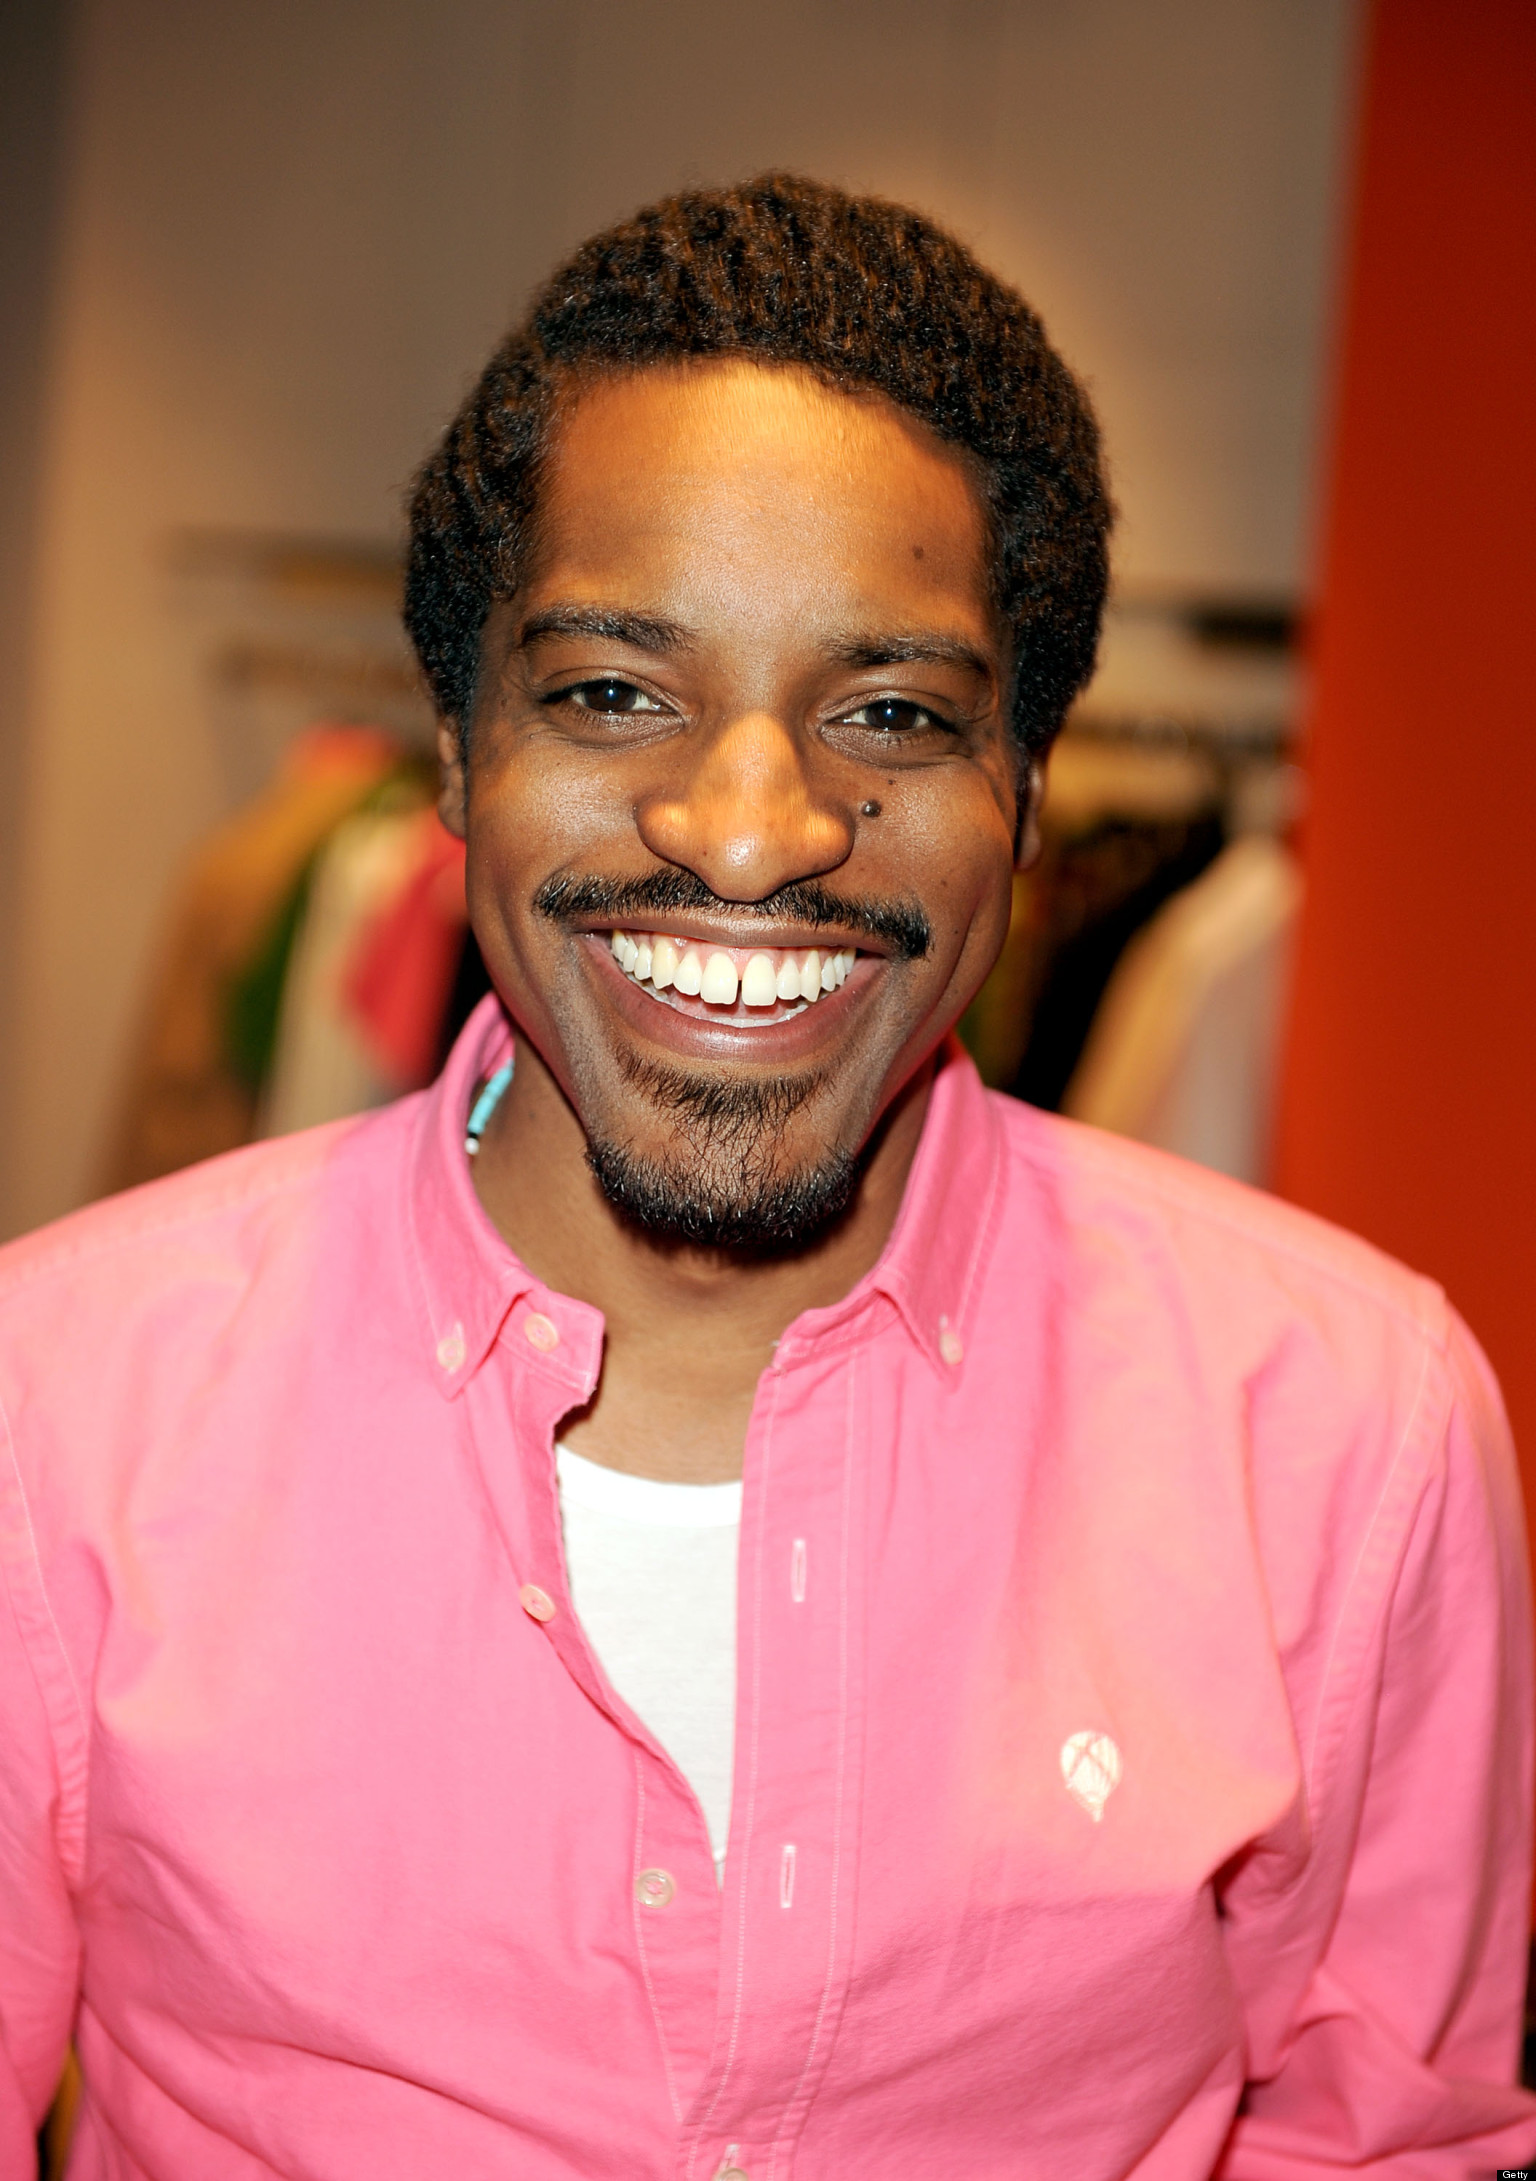 andre 3000 grooms strangers with gillette and talks style